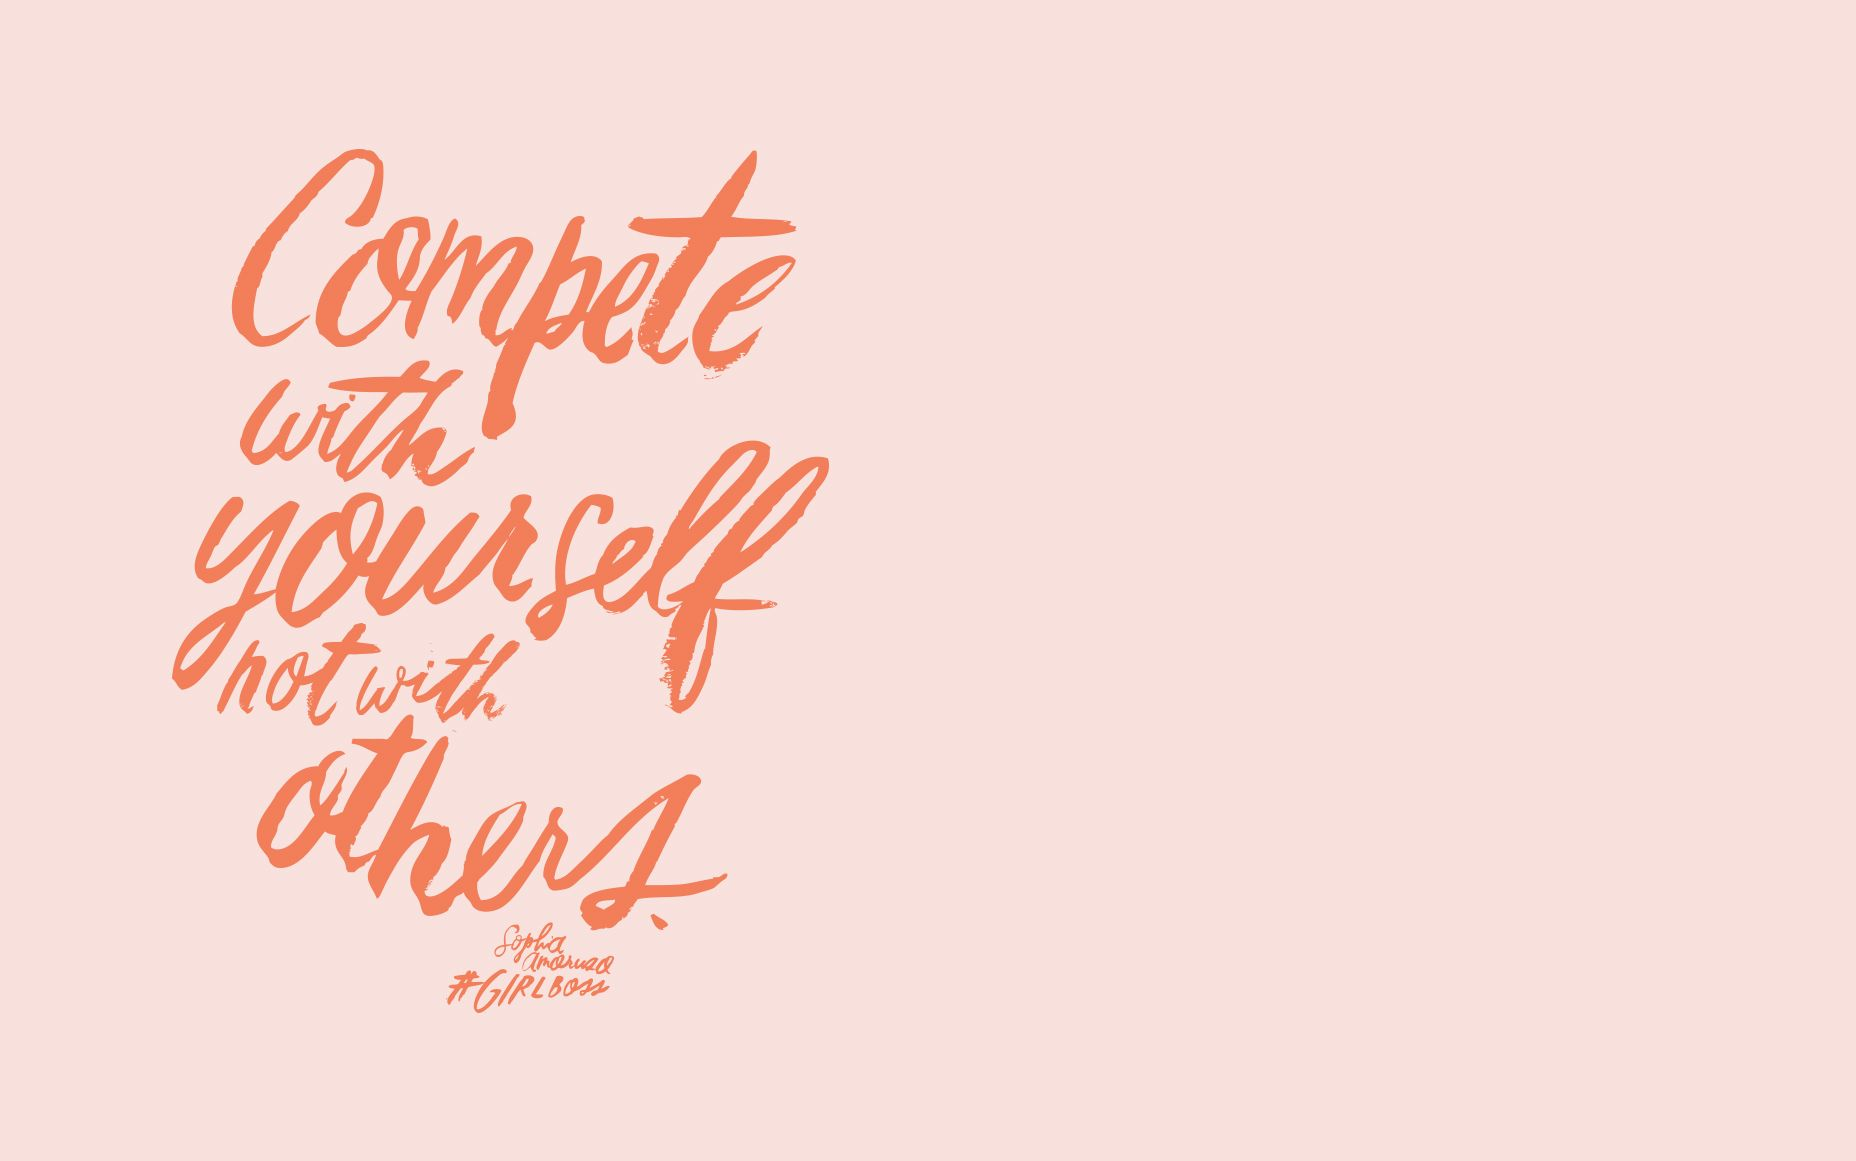 Girlboss Beyourself Girlpower Wonderwoman Desktop Wallpaper Quotes Desktop Background Quote Laptop Wallpaper Quotes